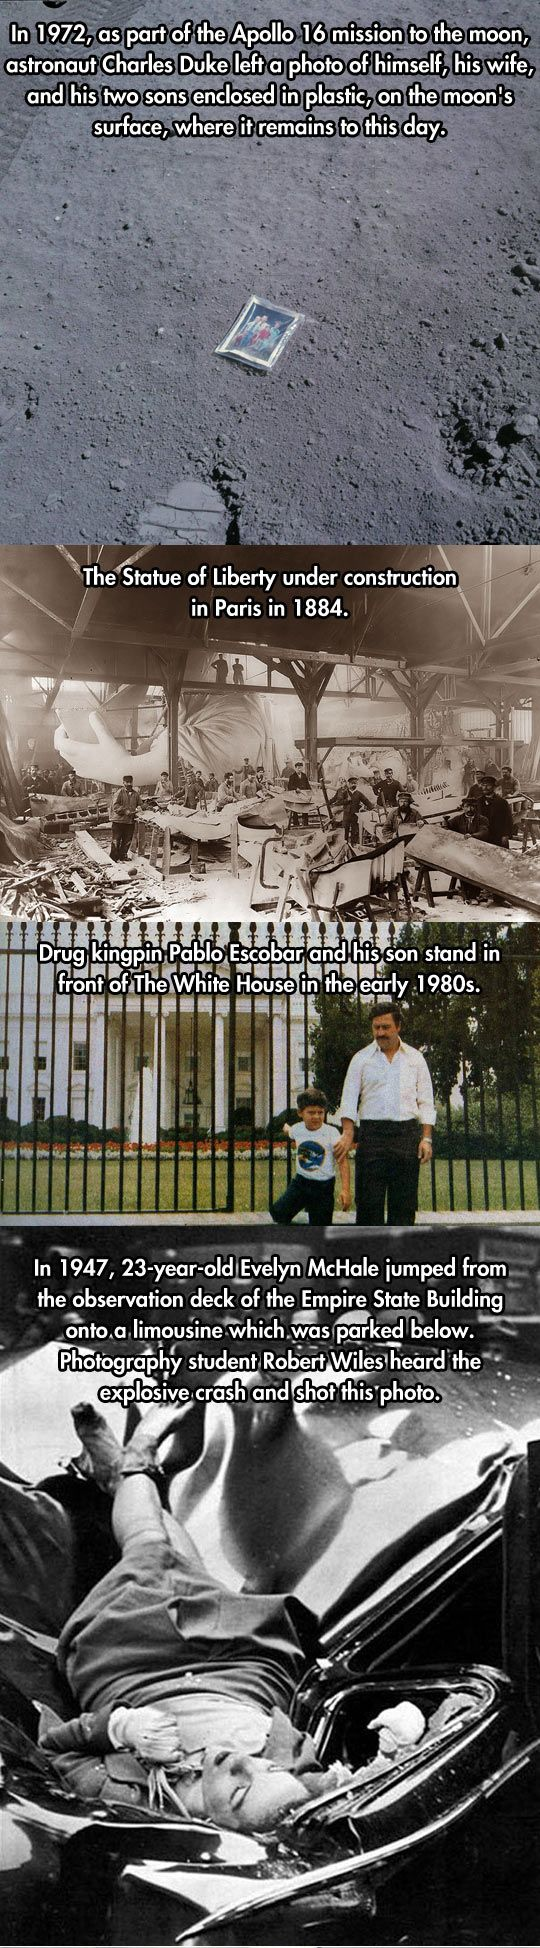 20 Rare Historical Photos...altho the 1st cant be true. It would have faded white eons ago.